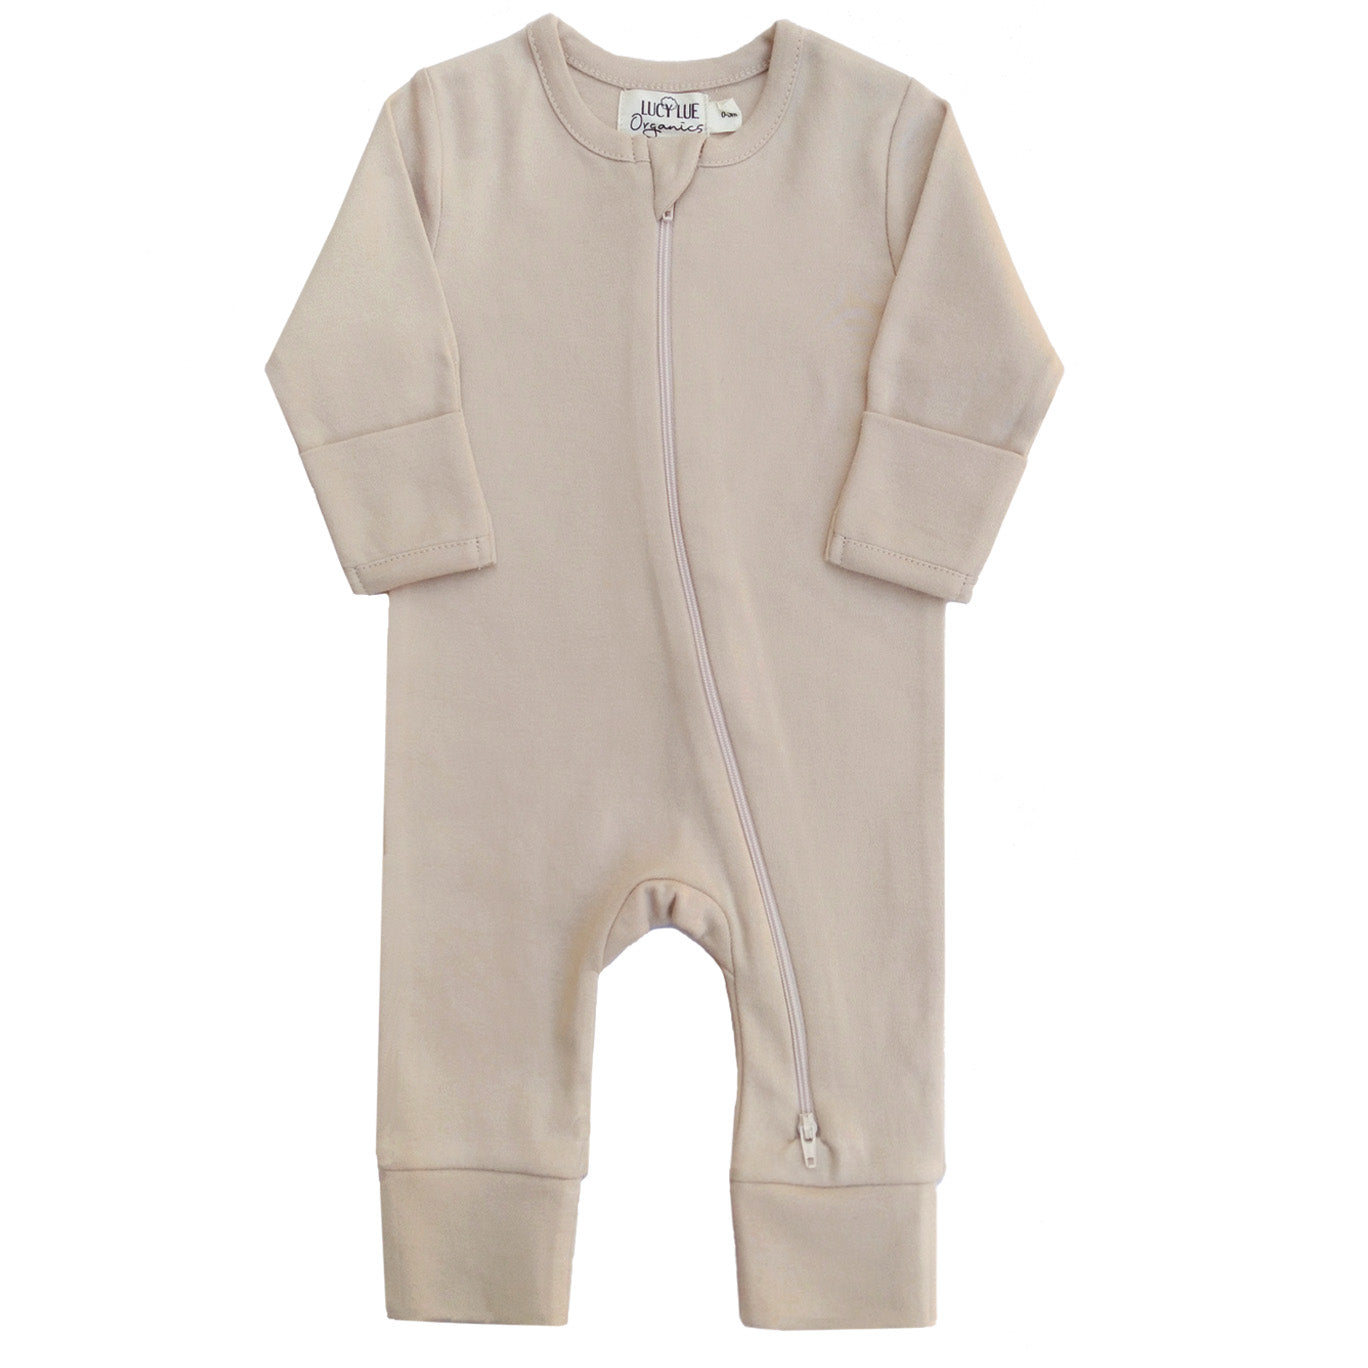 Organic Zipper footie by Lucy Lue Organics. Footed baby romper. Organic baby clothes. Modern organic baby clothes. Baby romper. Zip romper. Zipper baby bodysuit. 2 way zipper baby romper. Footed sleepers. organic onesie, long sleeve romper, newborn baby clothes, L'oved baby romper jumpsuit. sustainable baby clothes, gender neutral romper, romper gift set, baby girl romper, baby boy romper